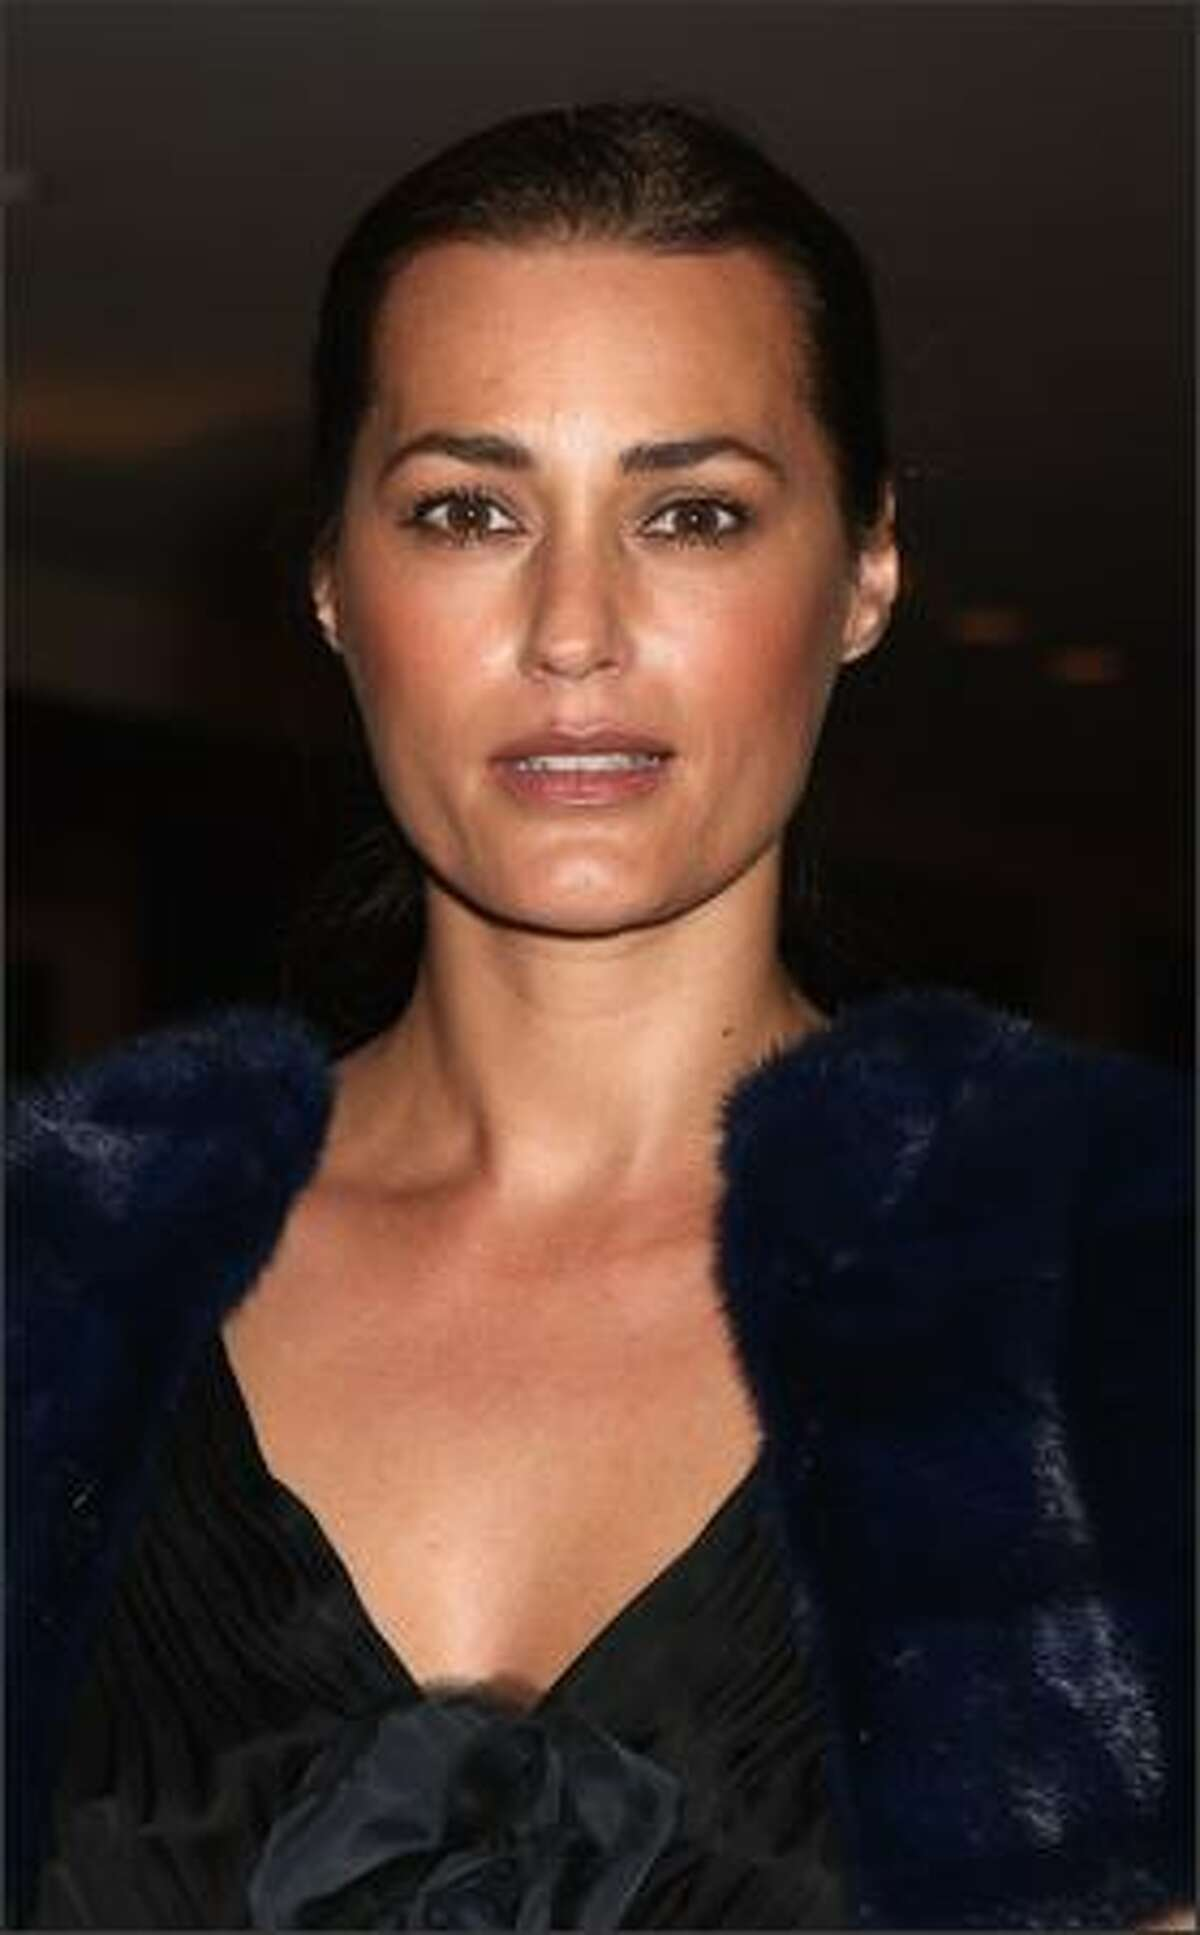 Model Yasmine Le Bon arrives at the Grand Opening of the new One&Only Cape Town resort in Cape Town, South Africa.